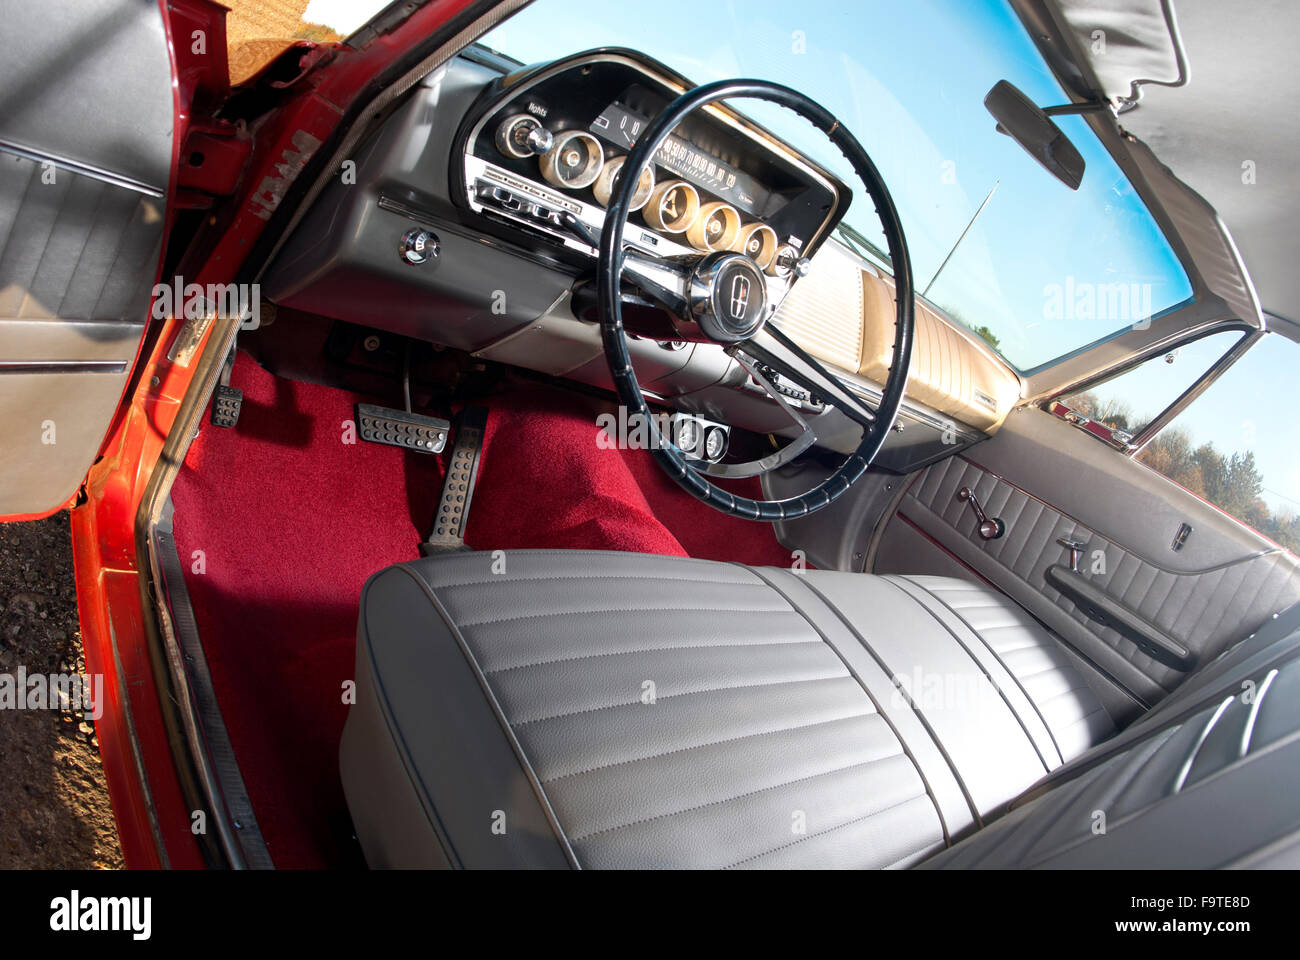 1962 Dodge Dart American Car Interior Stock Photo Alamy